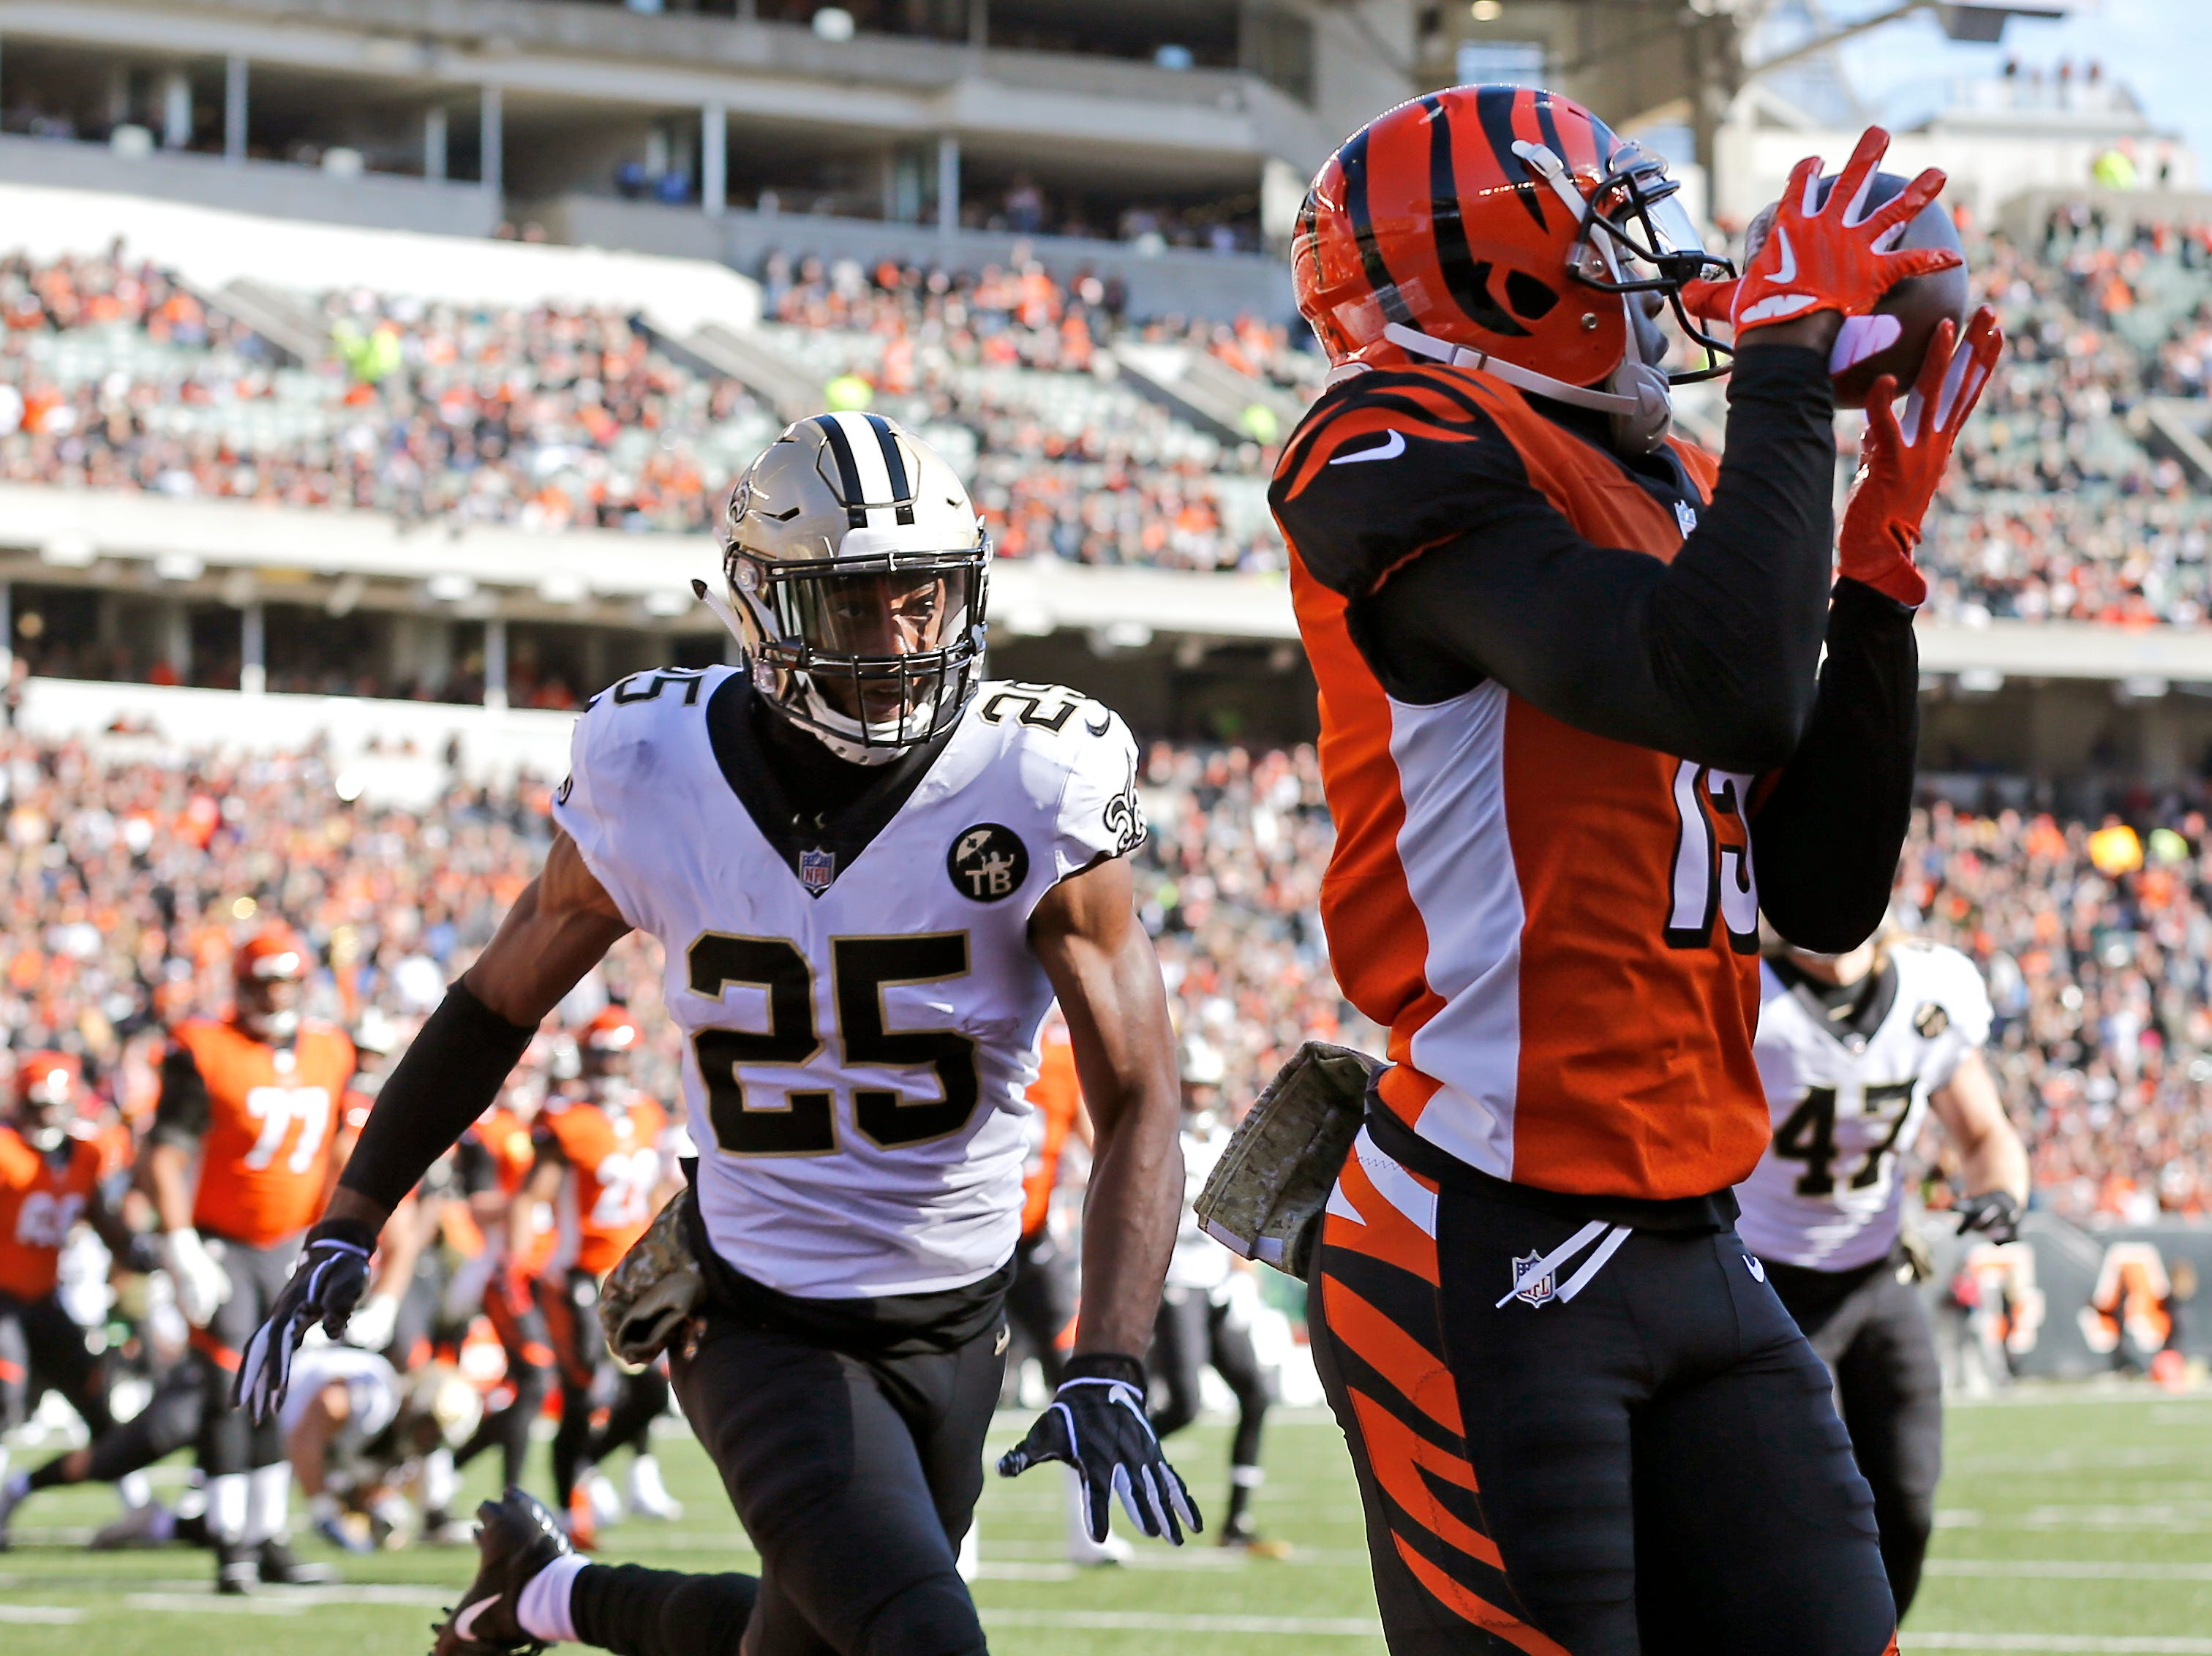 Cincinnati Bengals wide receiver John Ross (15) makes a touchdown catch in the first quarter of the NFL Week 10 game between the Cincinnati Bengals and the New Orleans Saints at Paul Brown Stadium in downtown Cincinnati on Sunday, Nov. 11, 2018. The Saints led 35-7 at halftime.